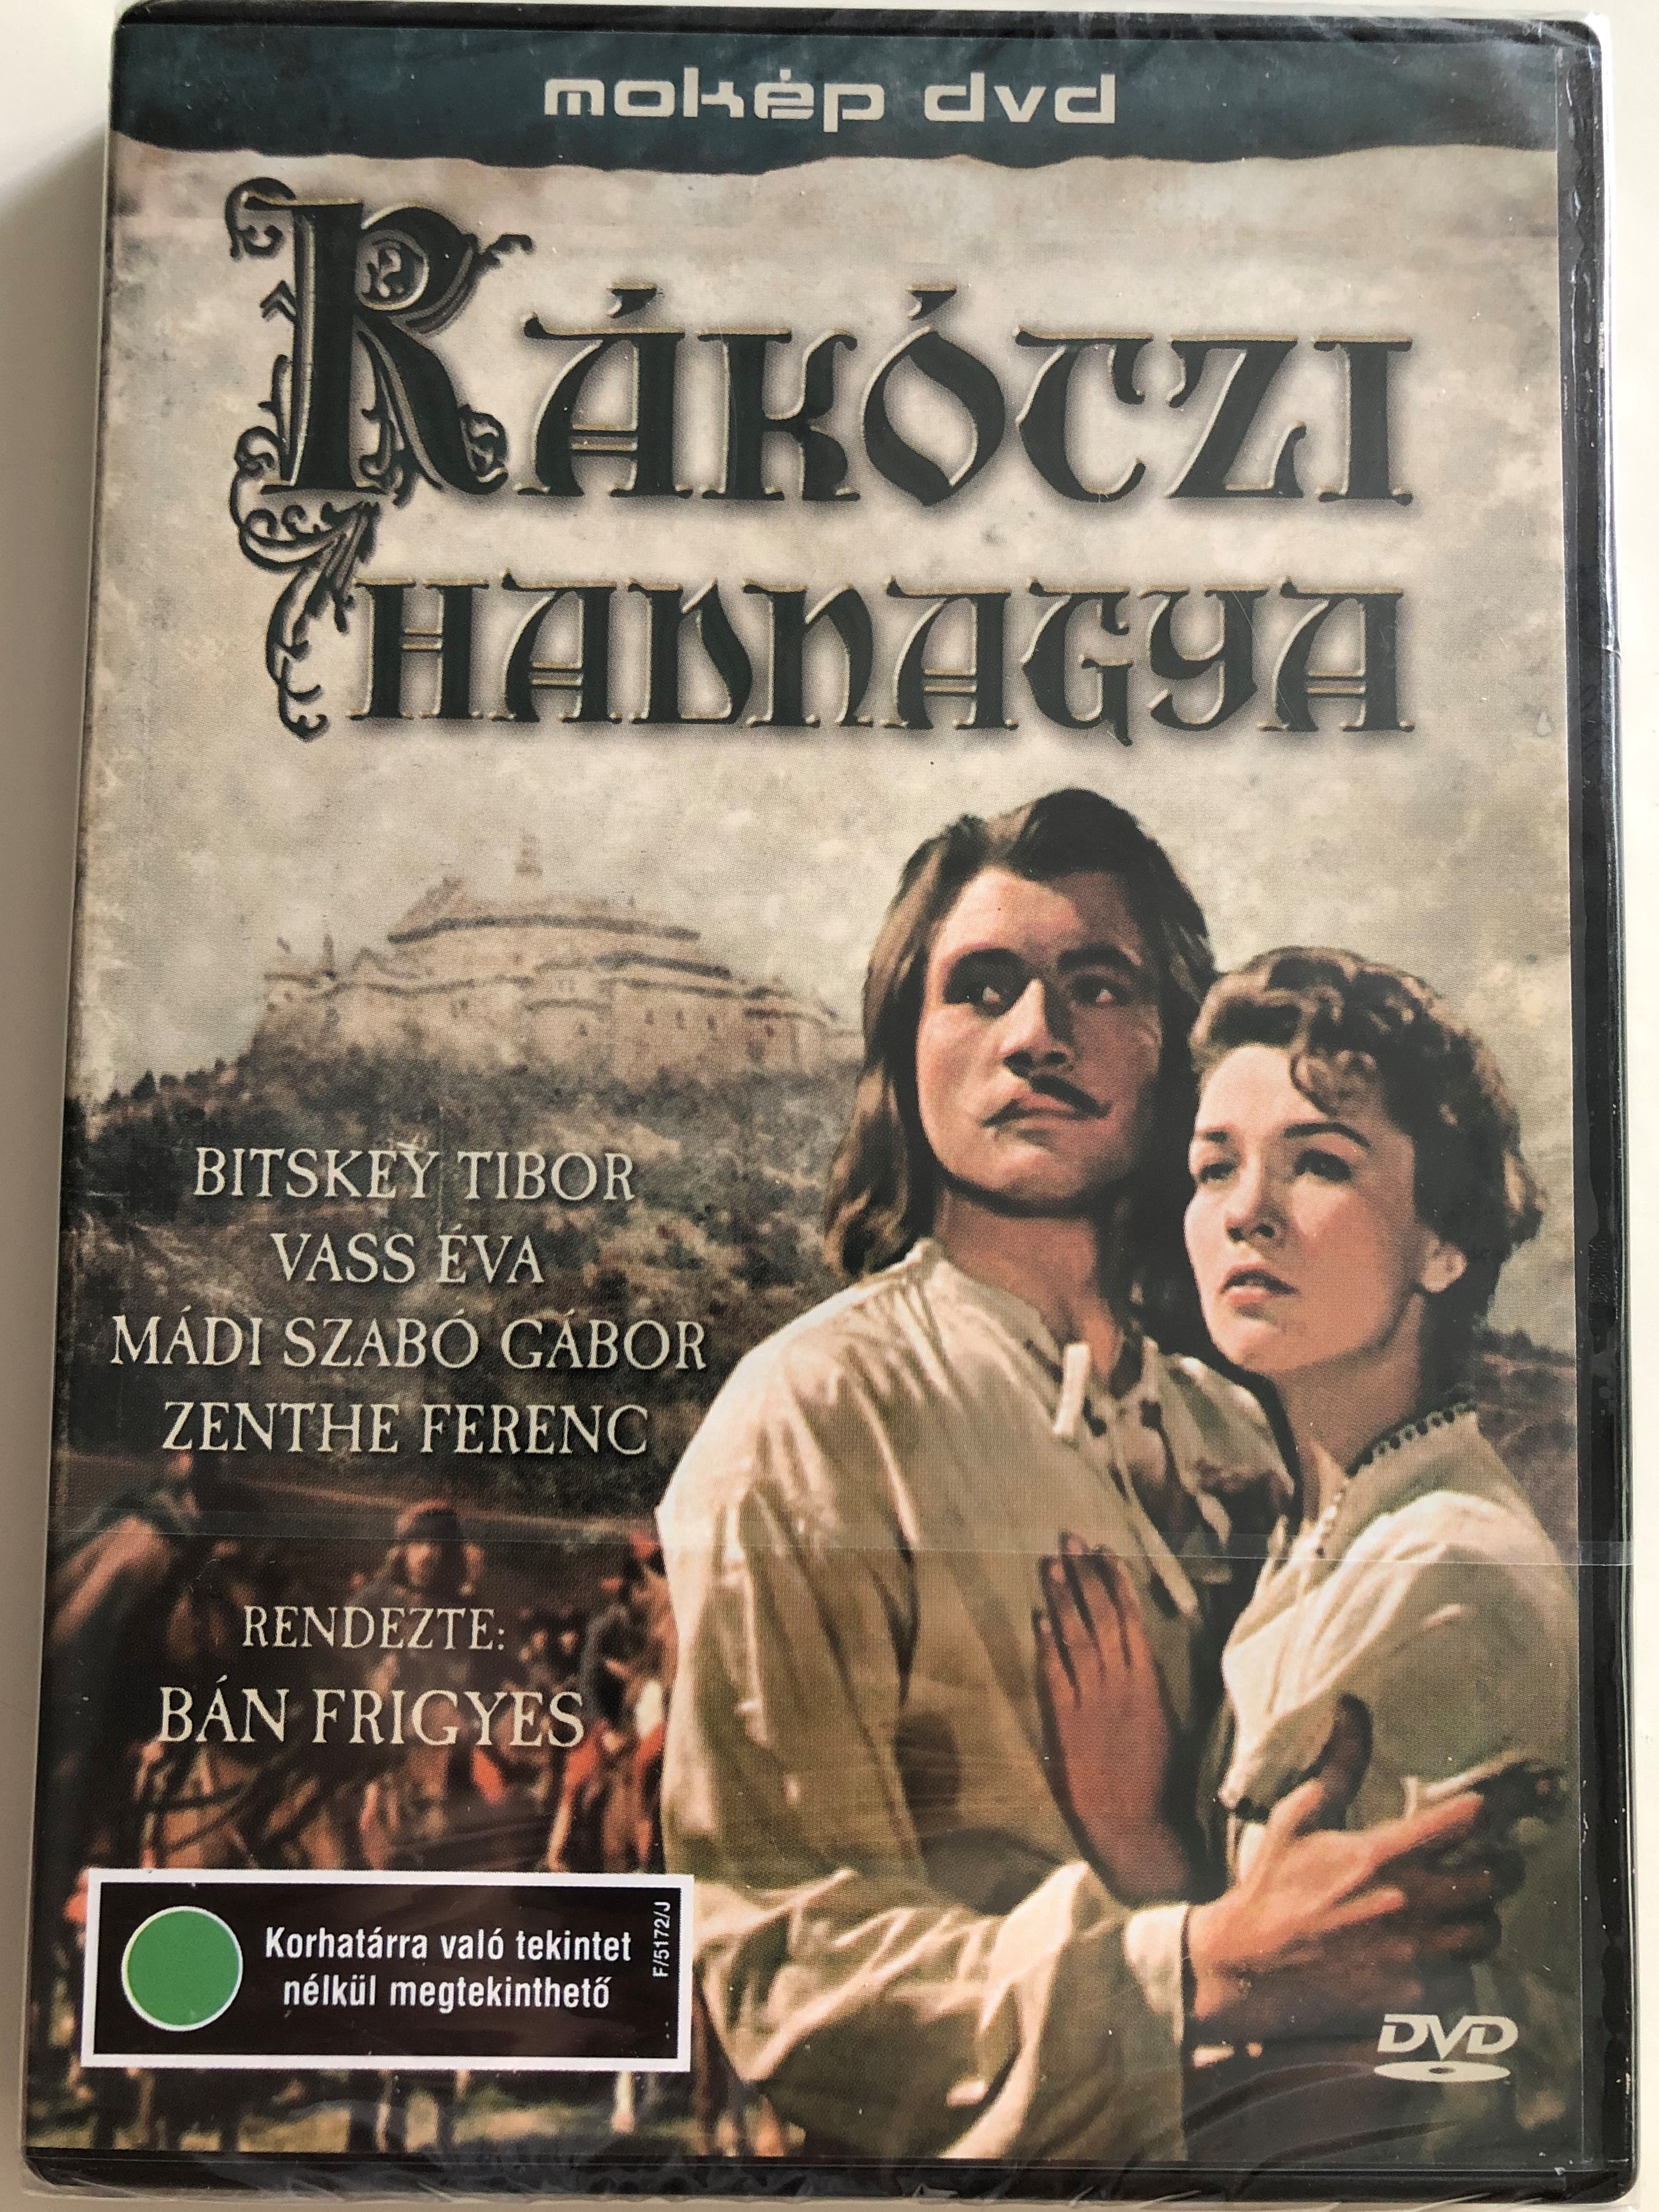 r-k-czi-hadnagya-dvd-1953-directed-by-b-n-frigyes-starring-bitskey-tibor-vass-va-gy-rf-s-endre-zenthe-ferenc-pethes-ferenc-hungarian-histroical-drama-1-.jpg